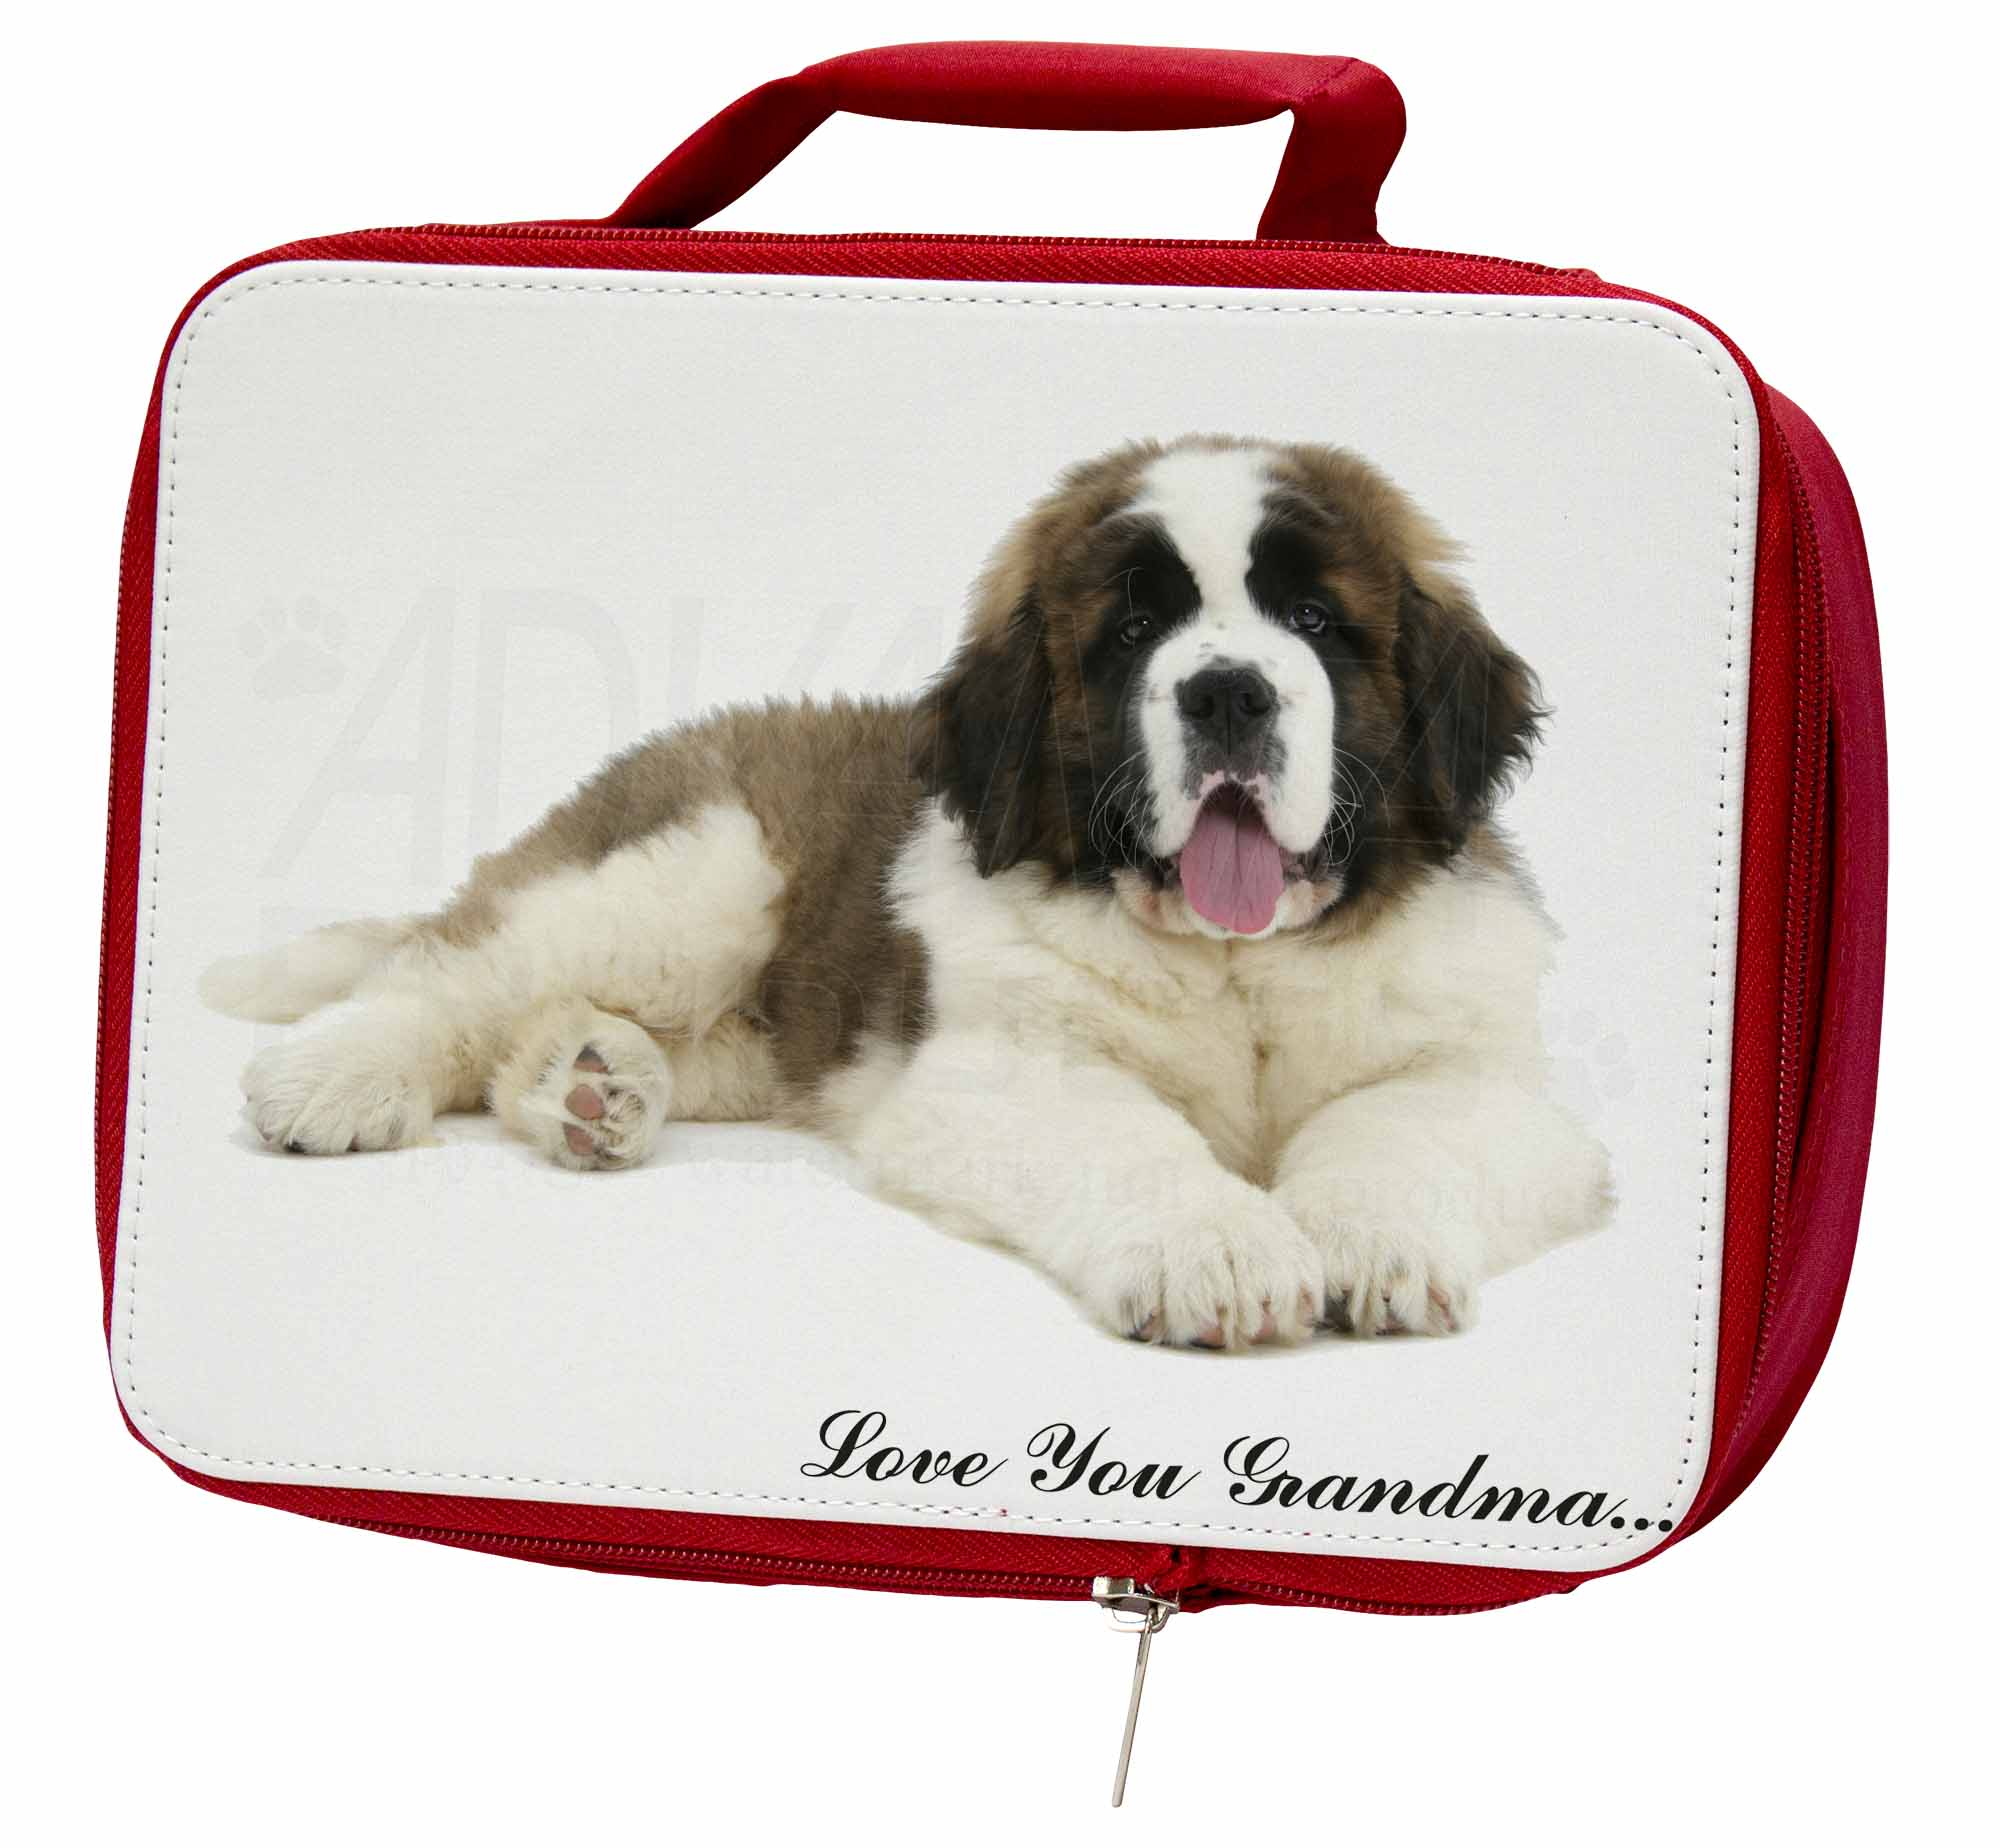 St. Bernard Dog 'Love You Grandma' Insulated Red School Lunch Box, AD-SBE5lygLBR